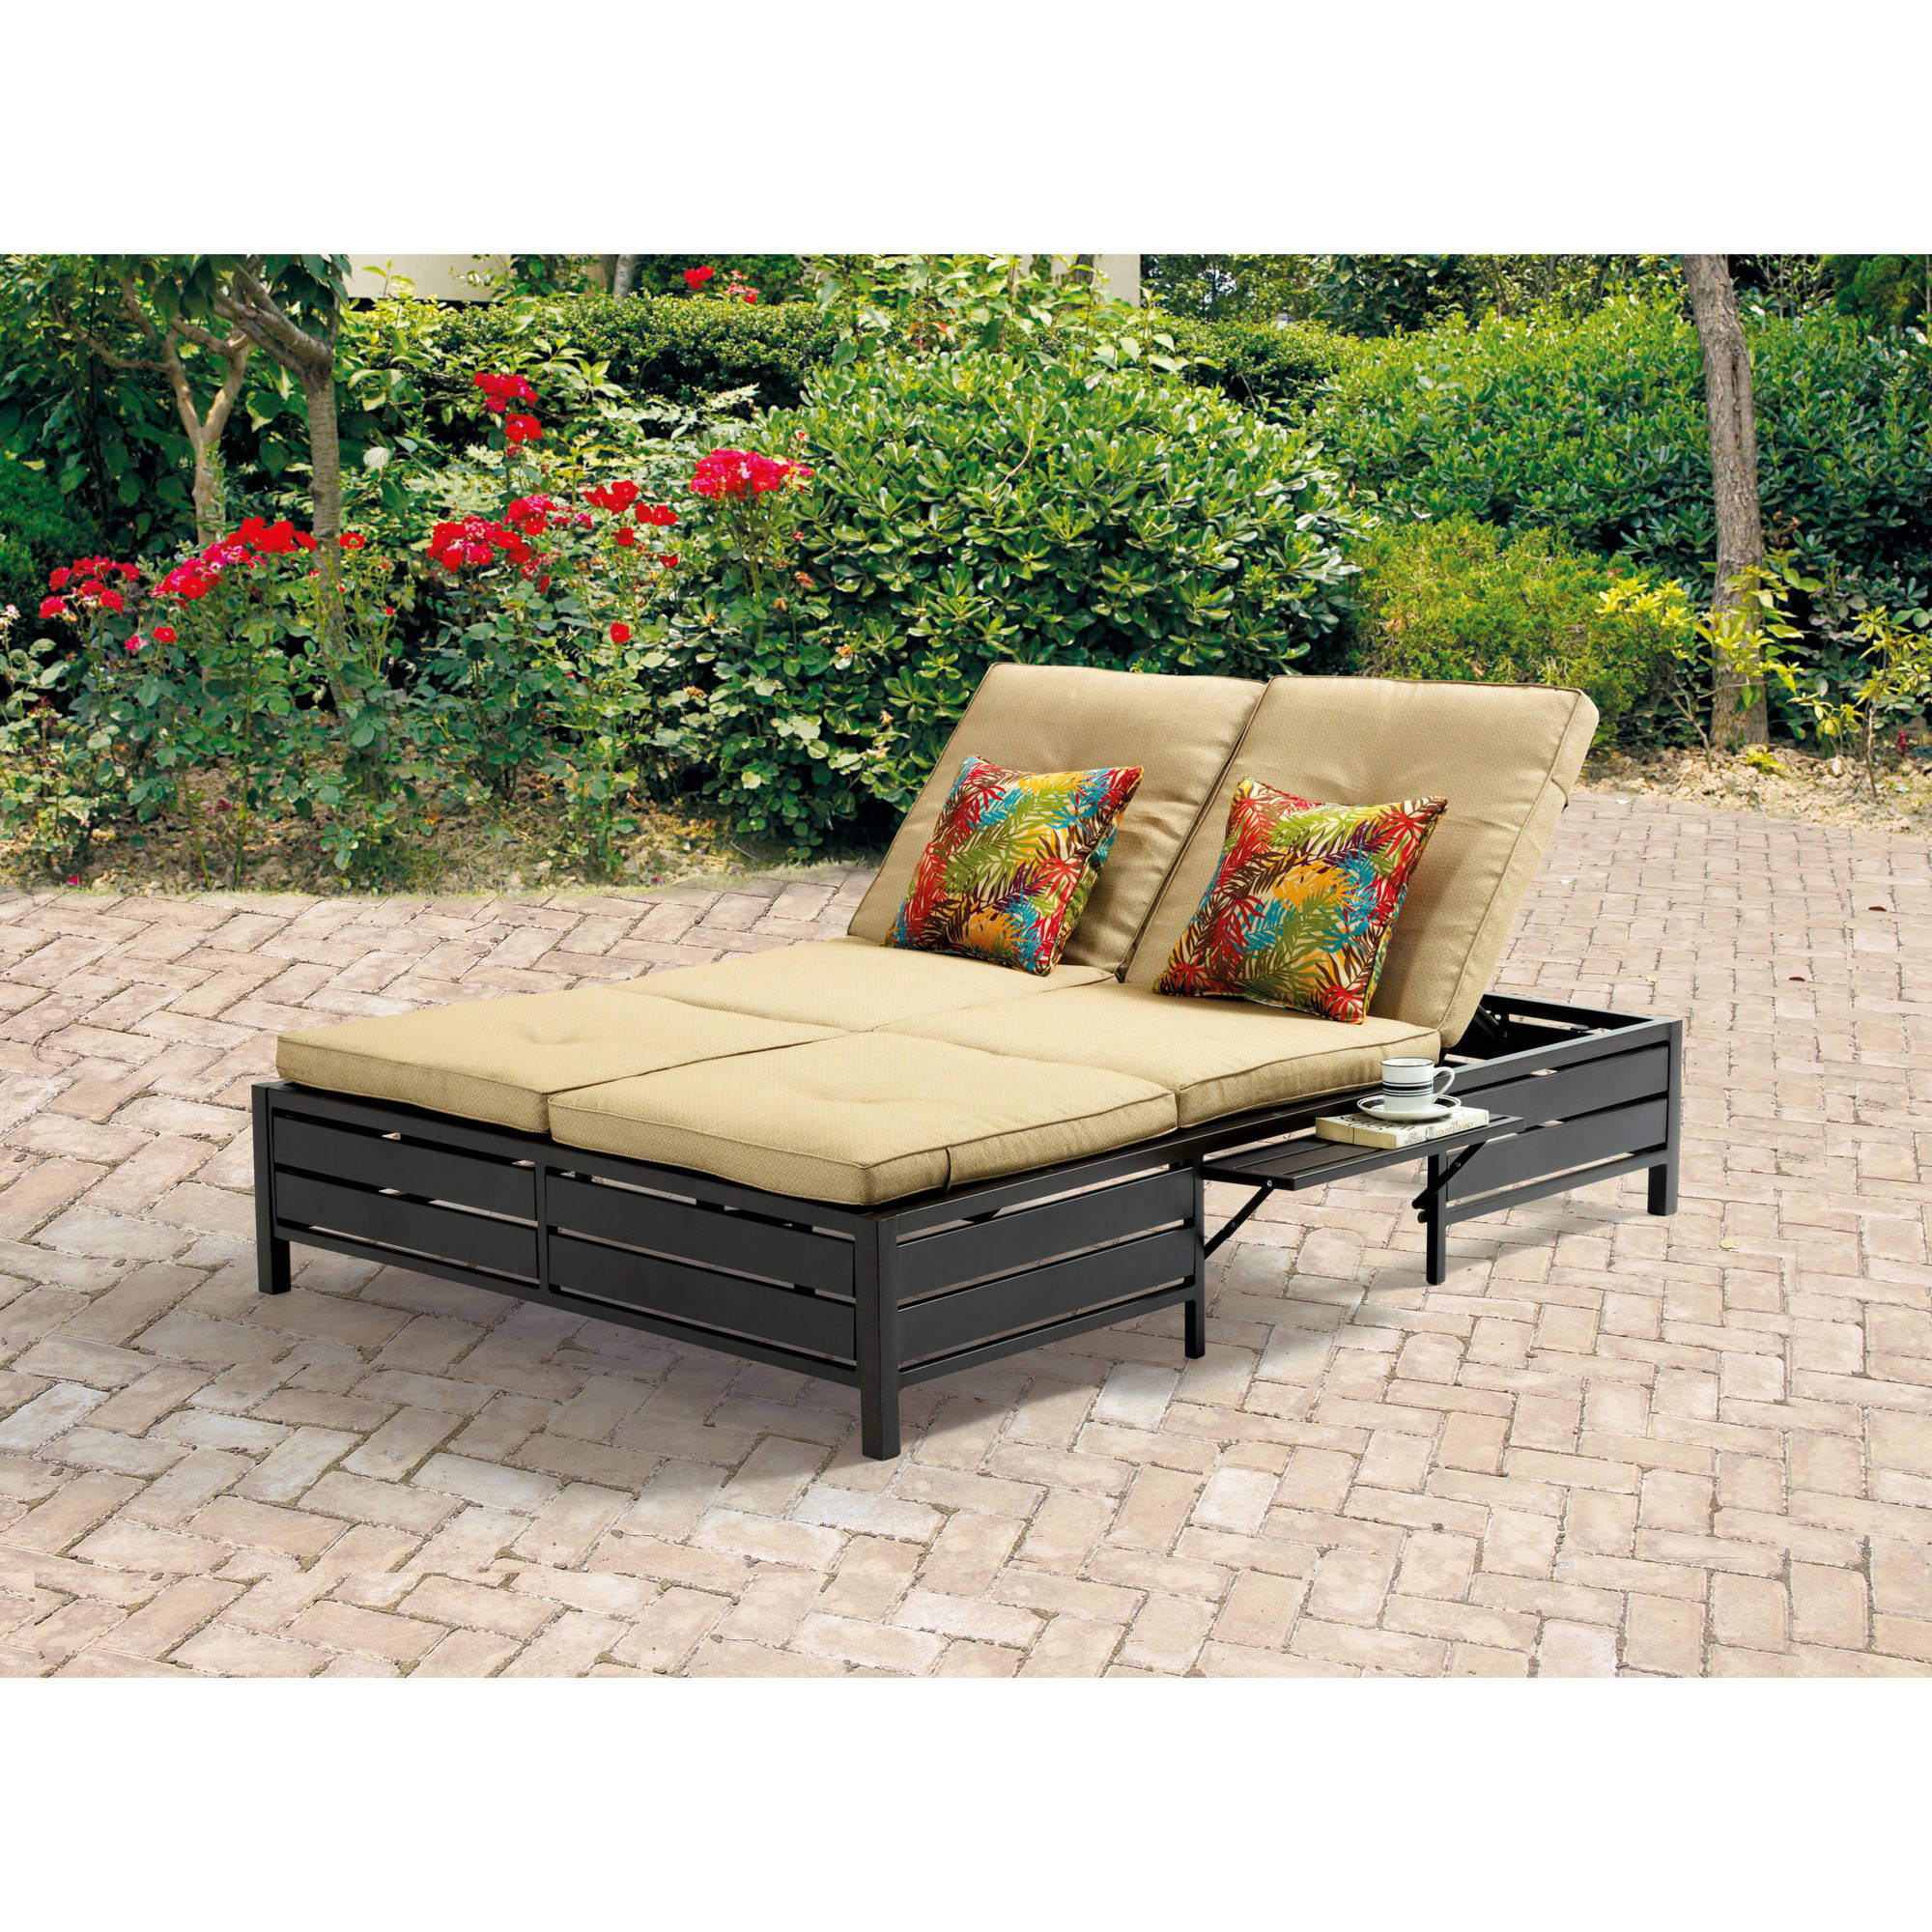 Mainstays Double Chaise Lounger Tan Seats 2  sc 1 st  Walmart : double patio chaise lounge - Sectionals, Sofas & Couches